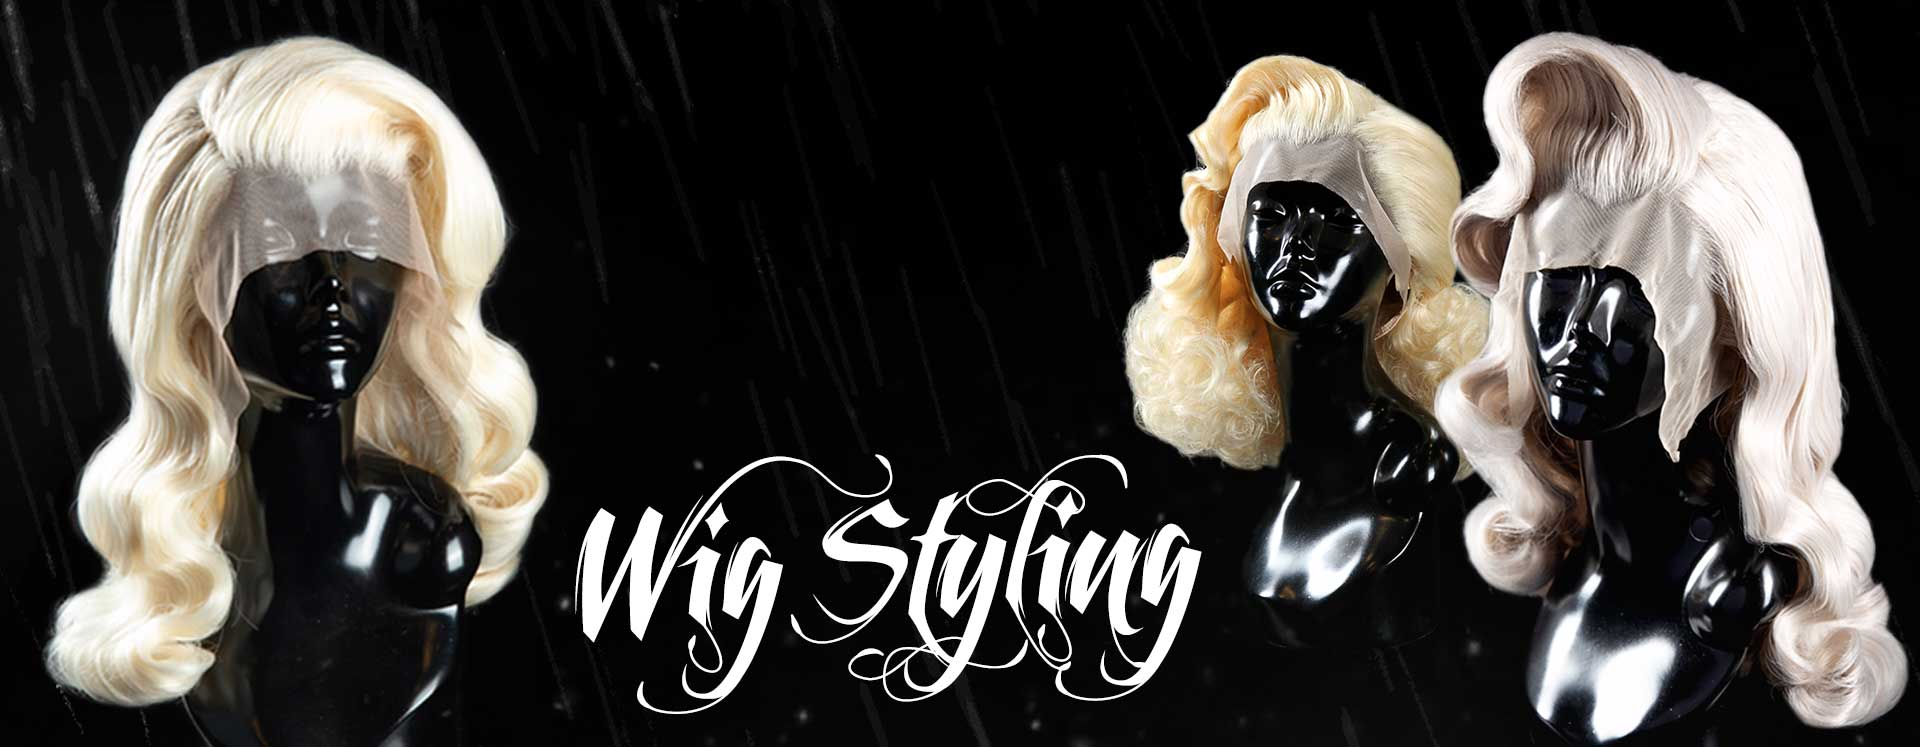 Deluxe Styled Wigs